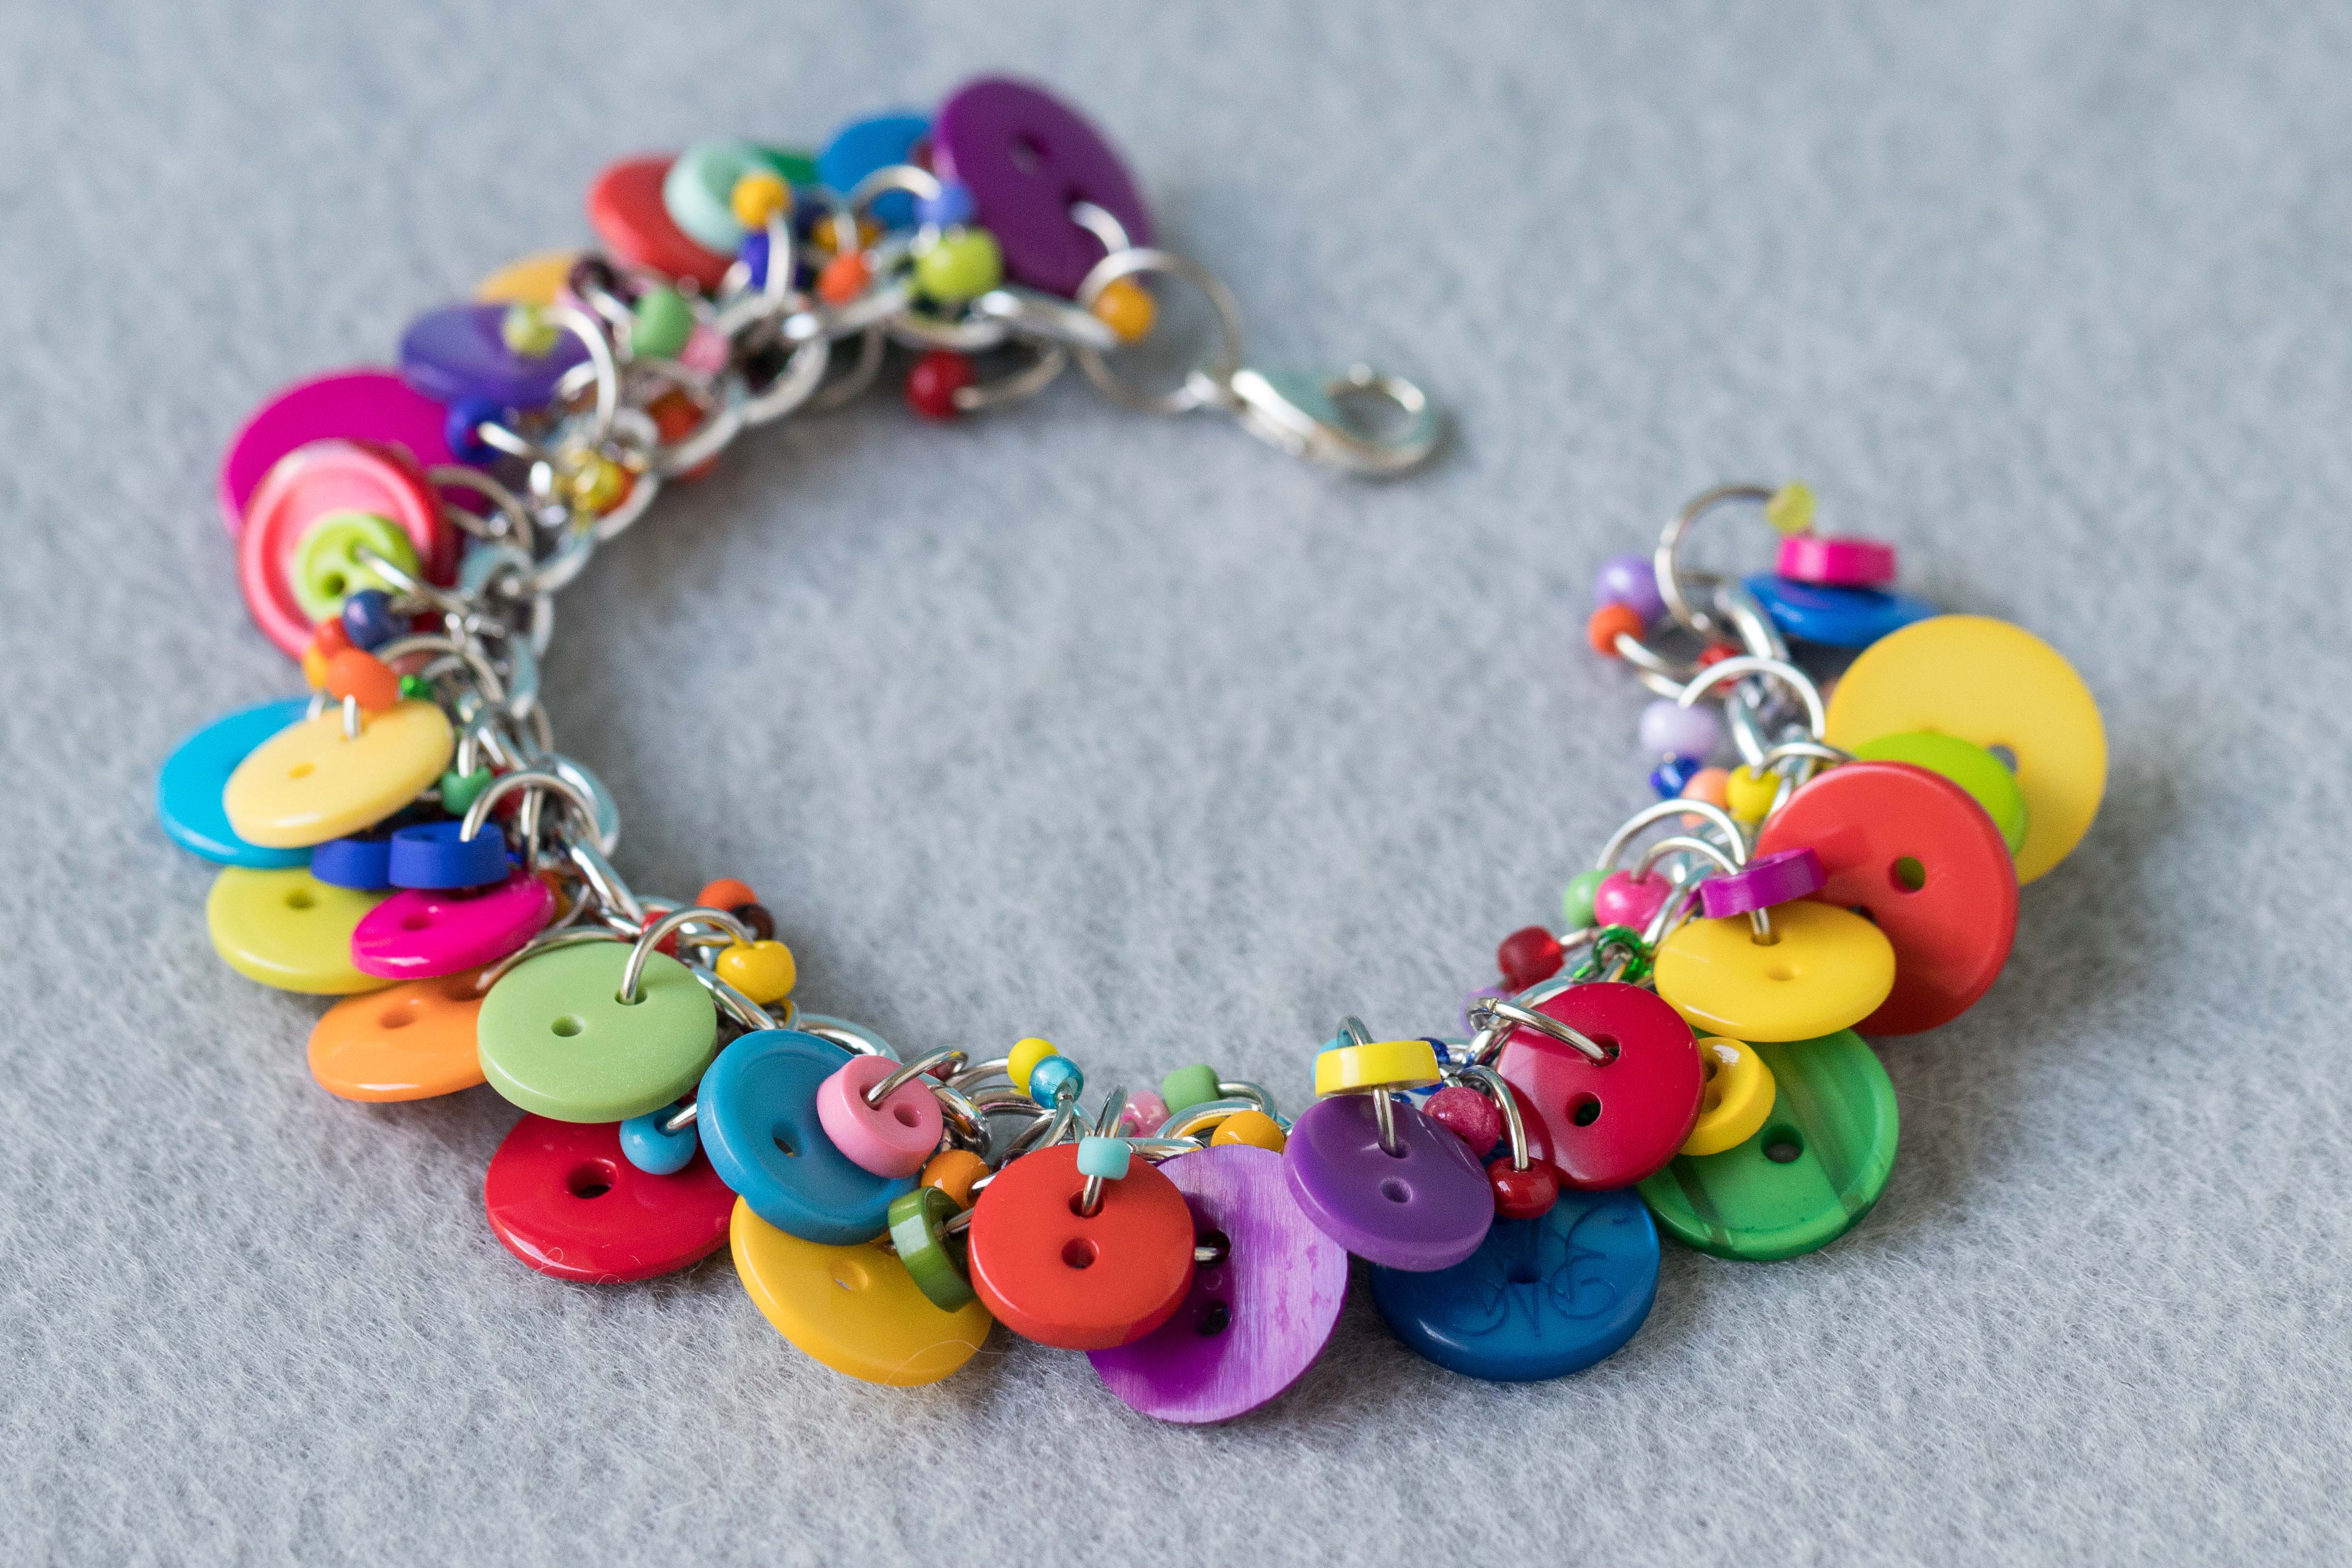 Button Charm Bracelet - Bright Colorful Jewelry - Fun Multicolored Rainbow Piece by randomcreative on Etsy | https://www.roseclearfield.com